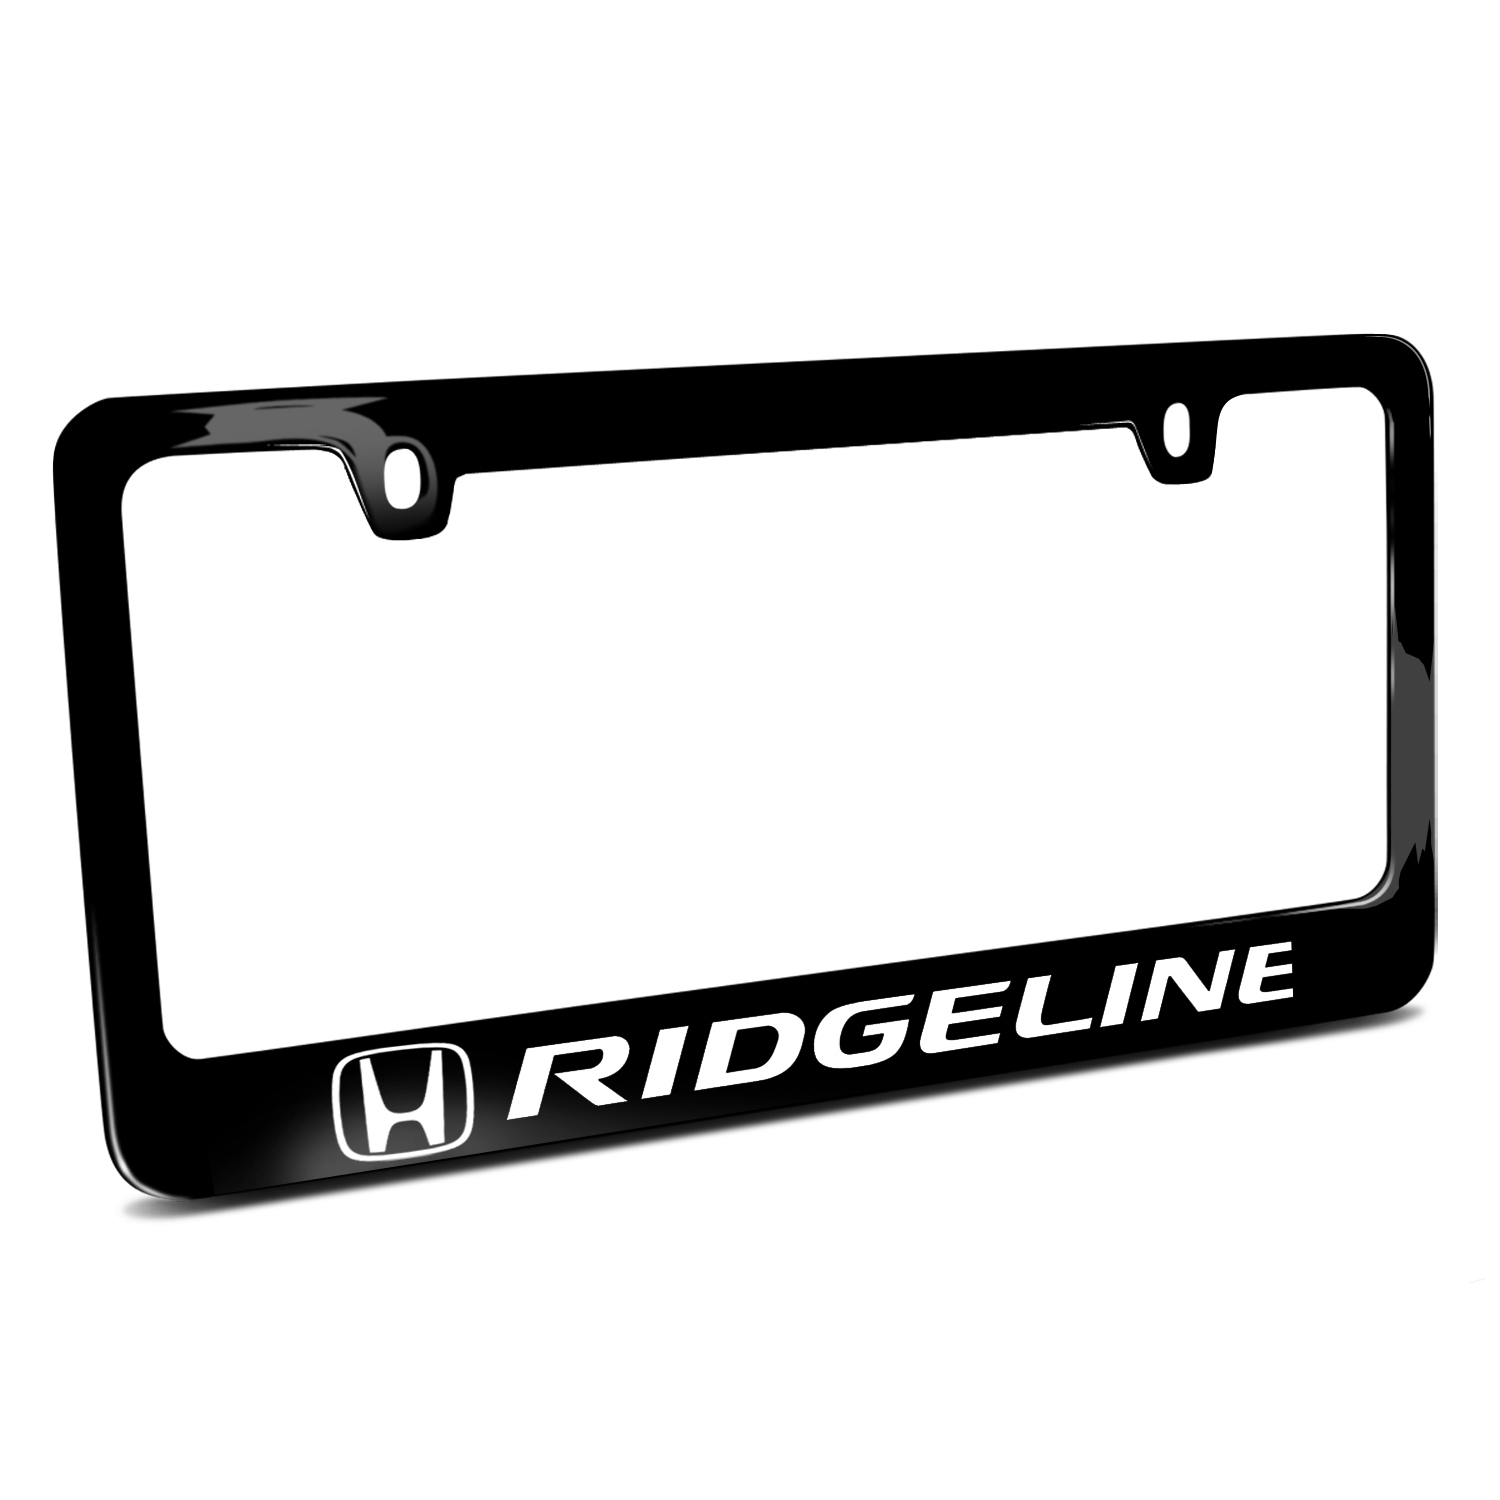 Honda Ridgeline Black Metal License Plate Frame